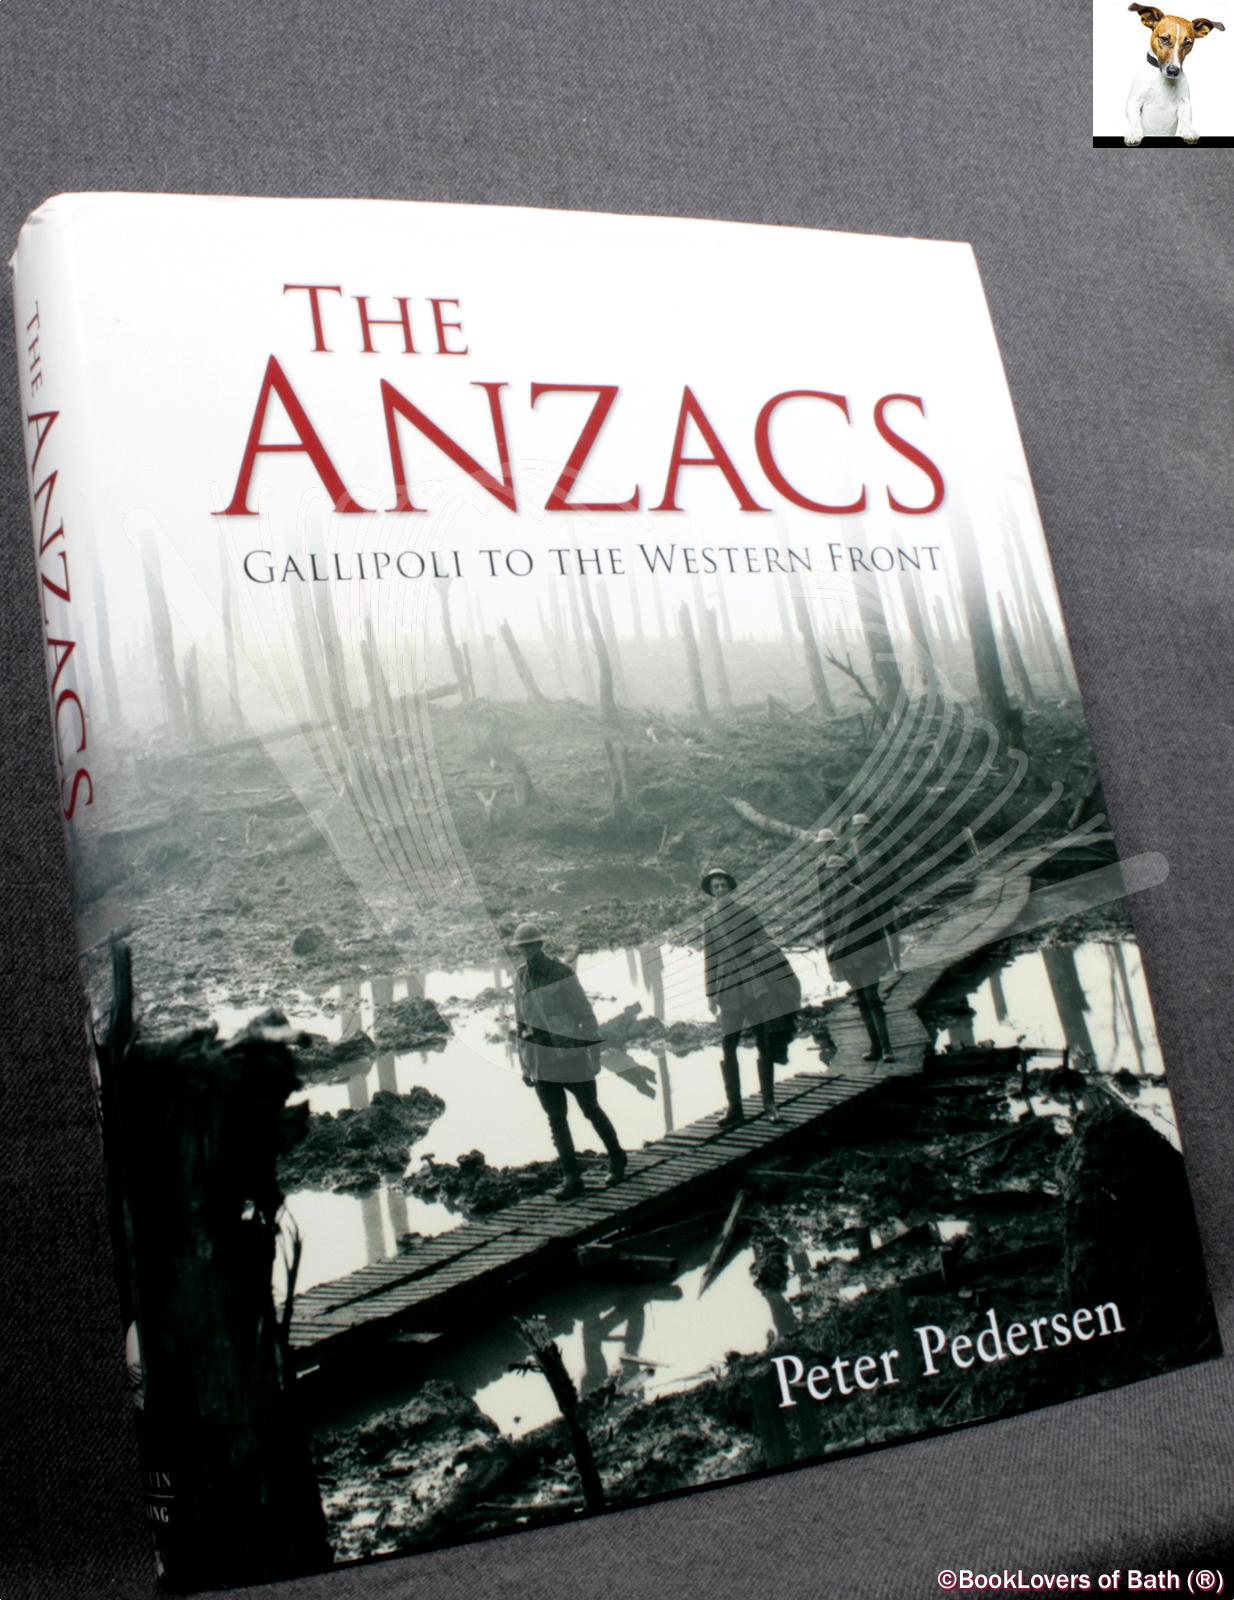 The Anzacs: Gallipoli to the Western Front - Peter Pedersen